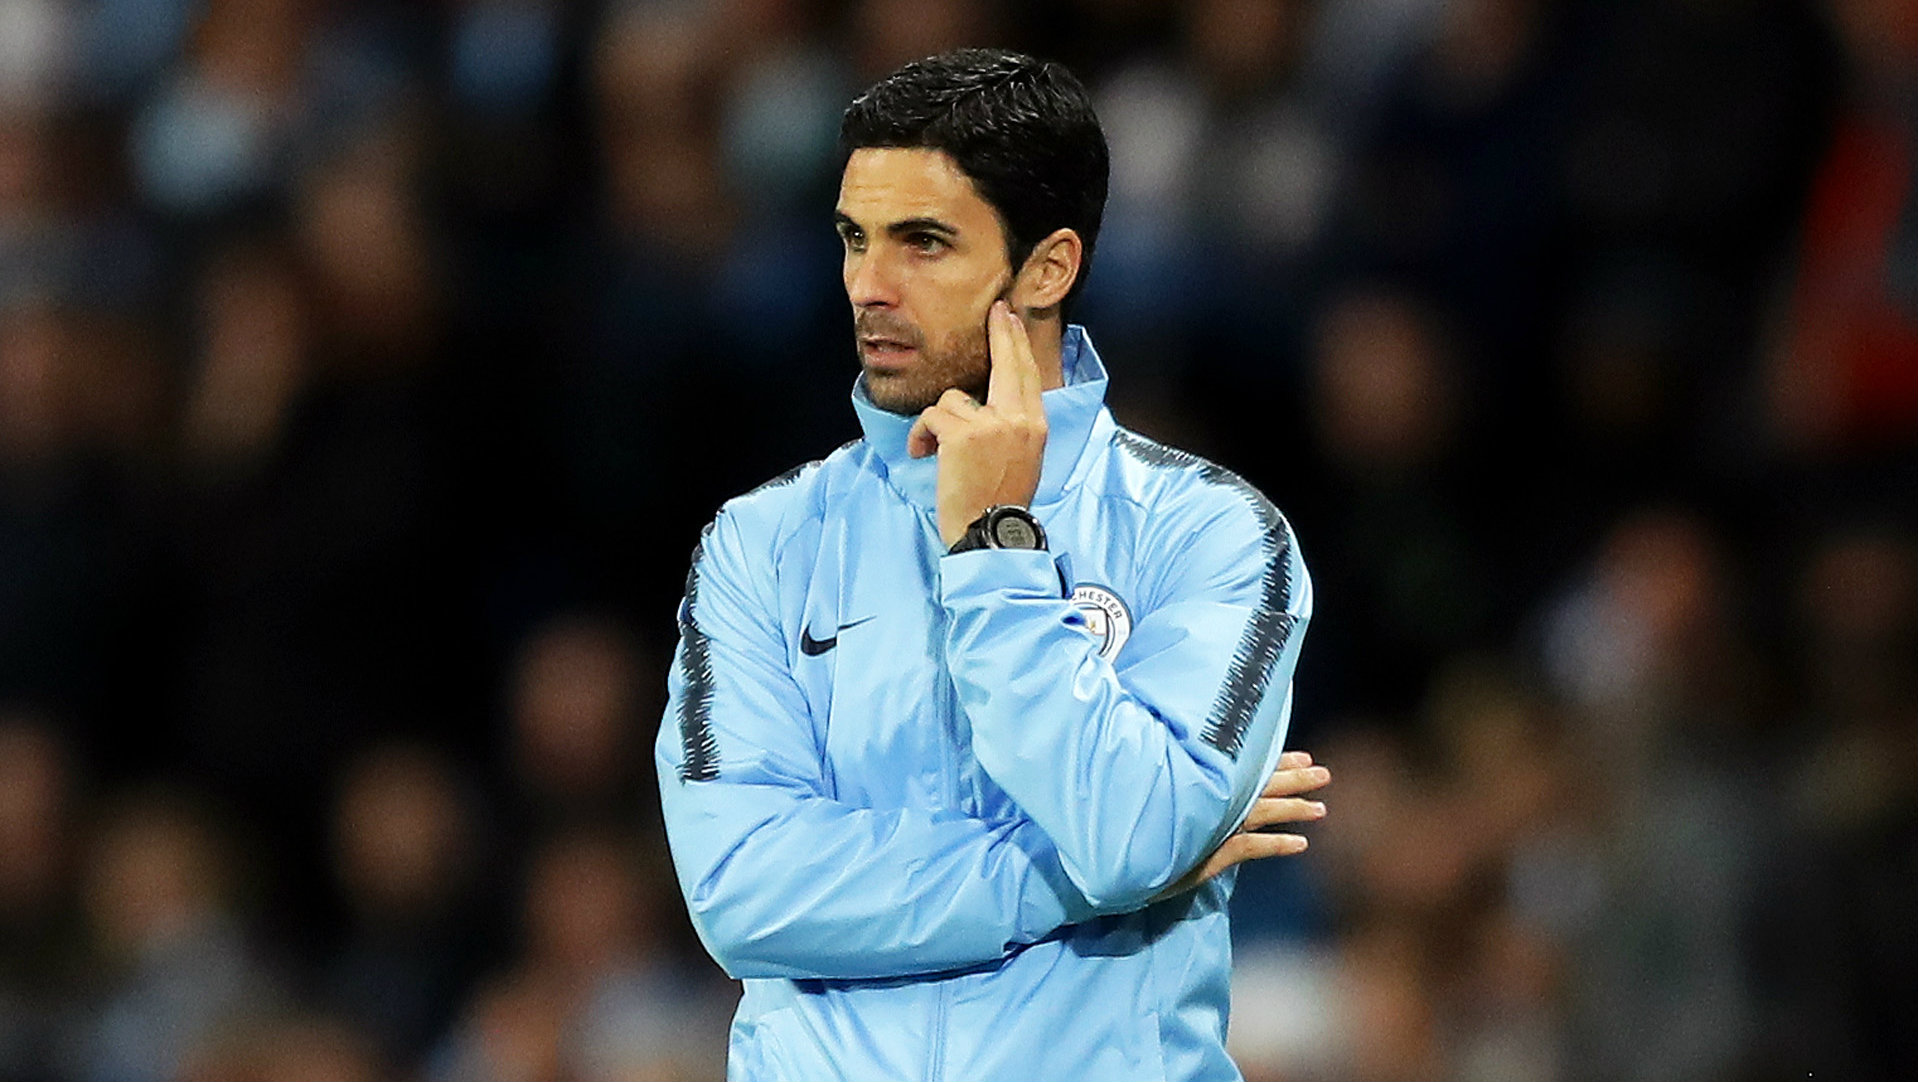 Twitter Thread Showing Mikel Arteta's Impact On Manchester City Has Gone Viral